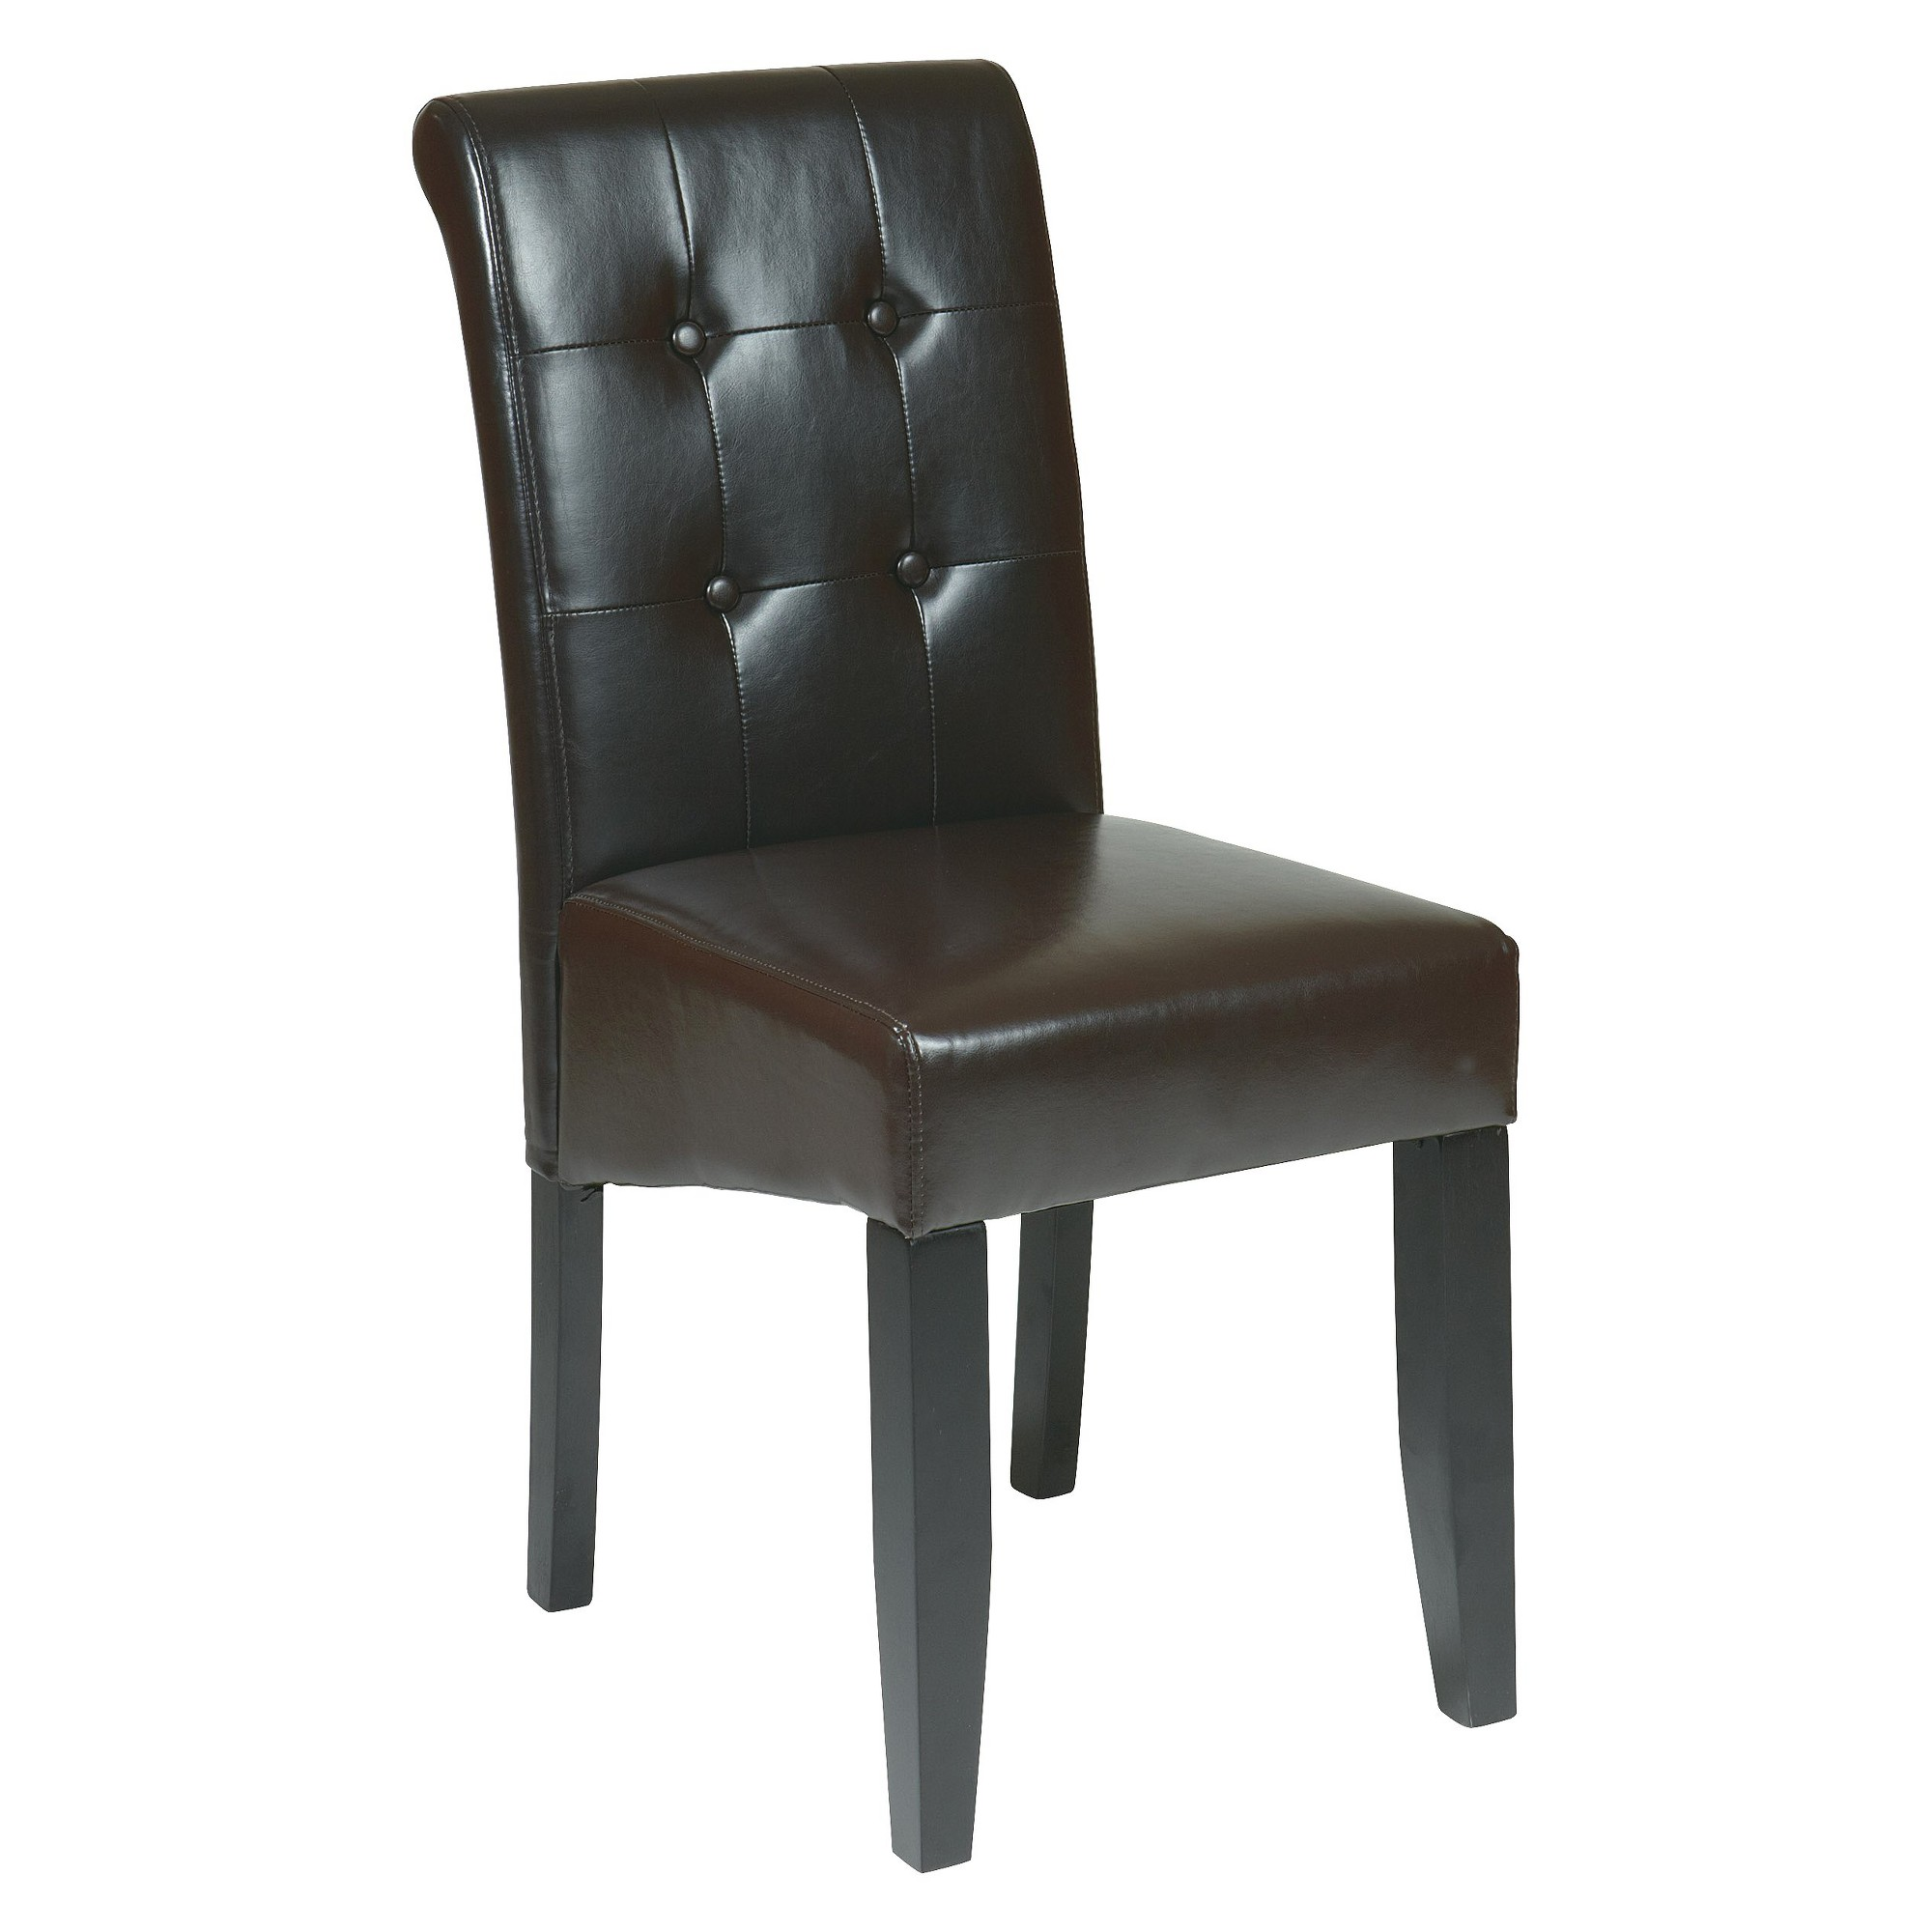 Parsons Button Back Nailhead Trim Dining Chair Wood/Espresso - Office Star, Brown